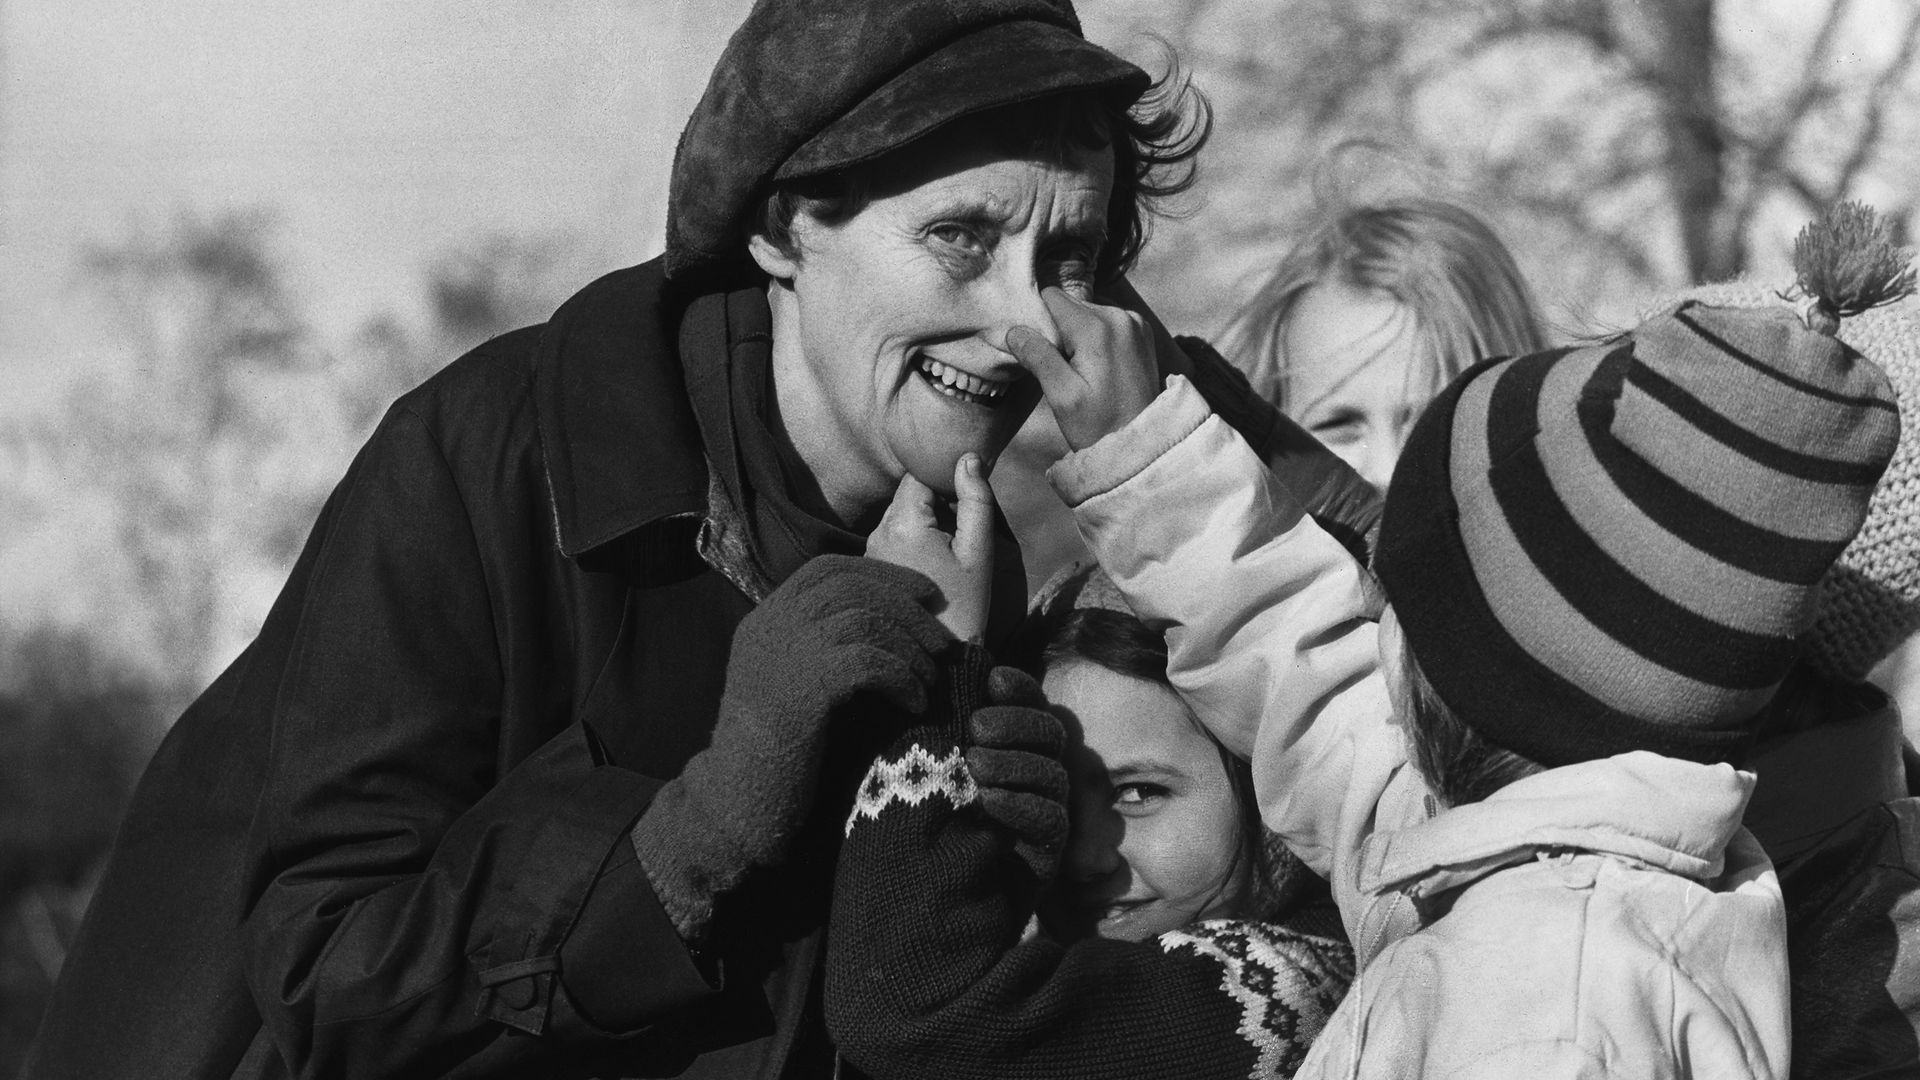 Author Astrid Lindgren has her nose pulled by a young fan - Credit: ullstein bild via Getty Images